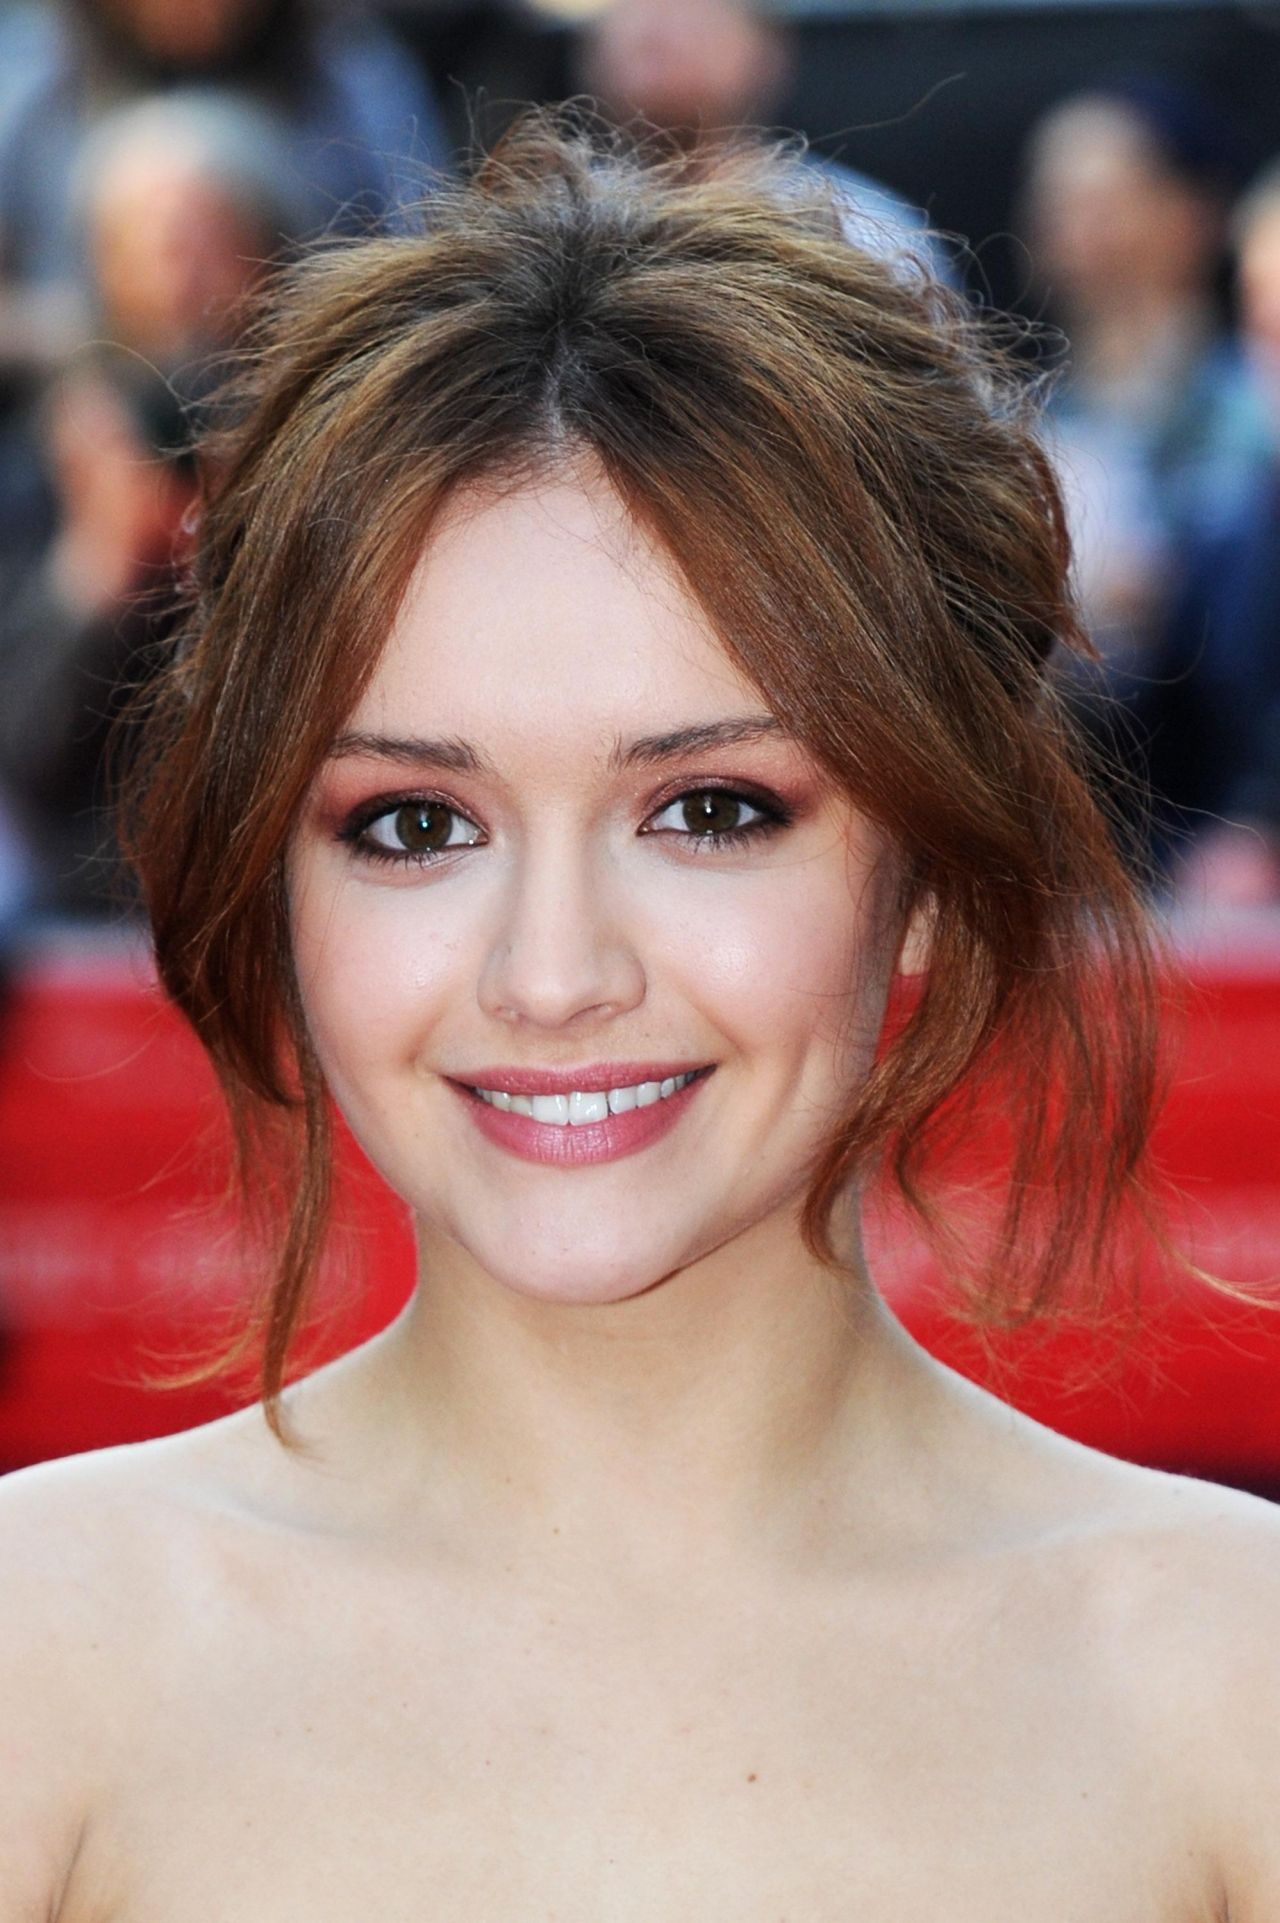 Olivia Cooke - 'The Quiet Ones' World Premiere at The Odeon West End in London